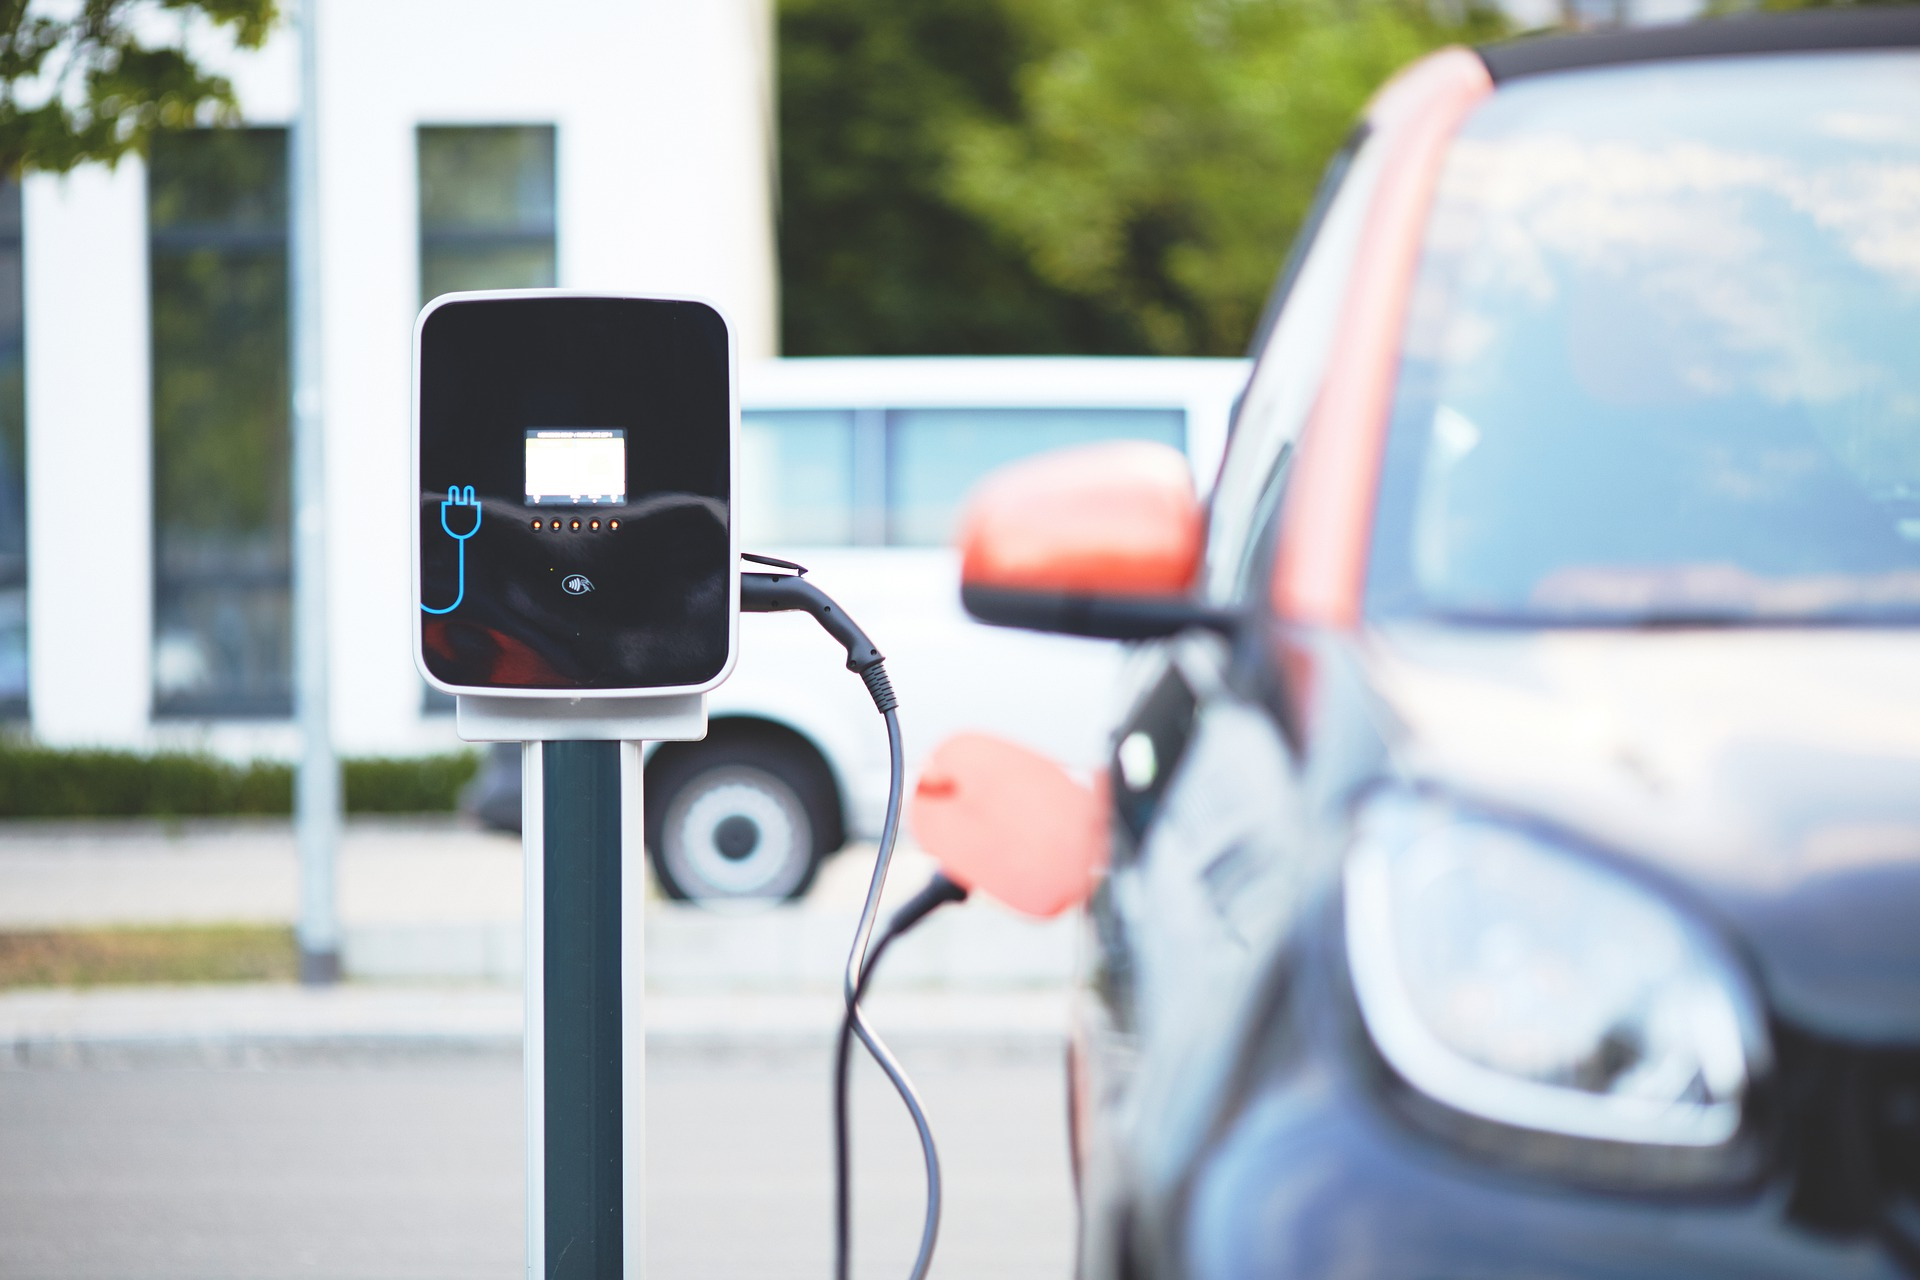 photo of a black and orange electric car plugged into a black charging point with a blue plug icon